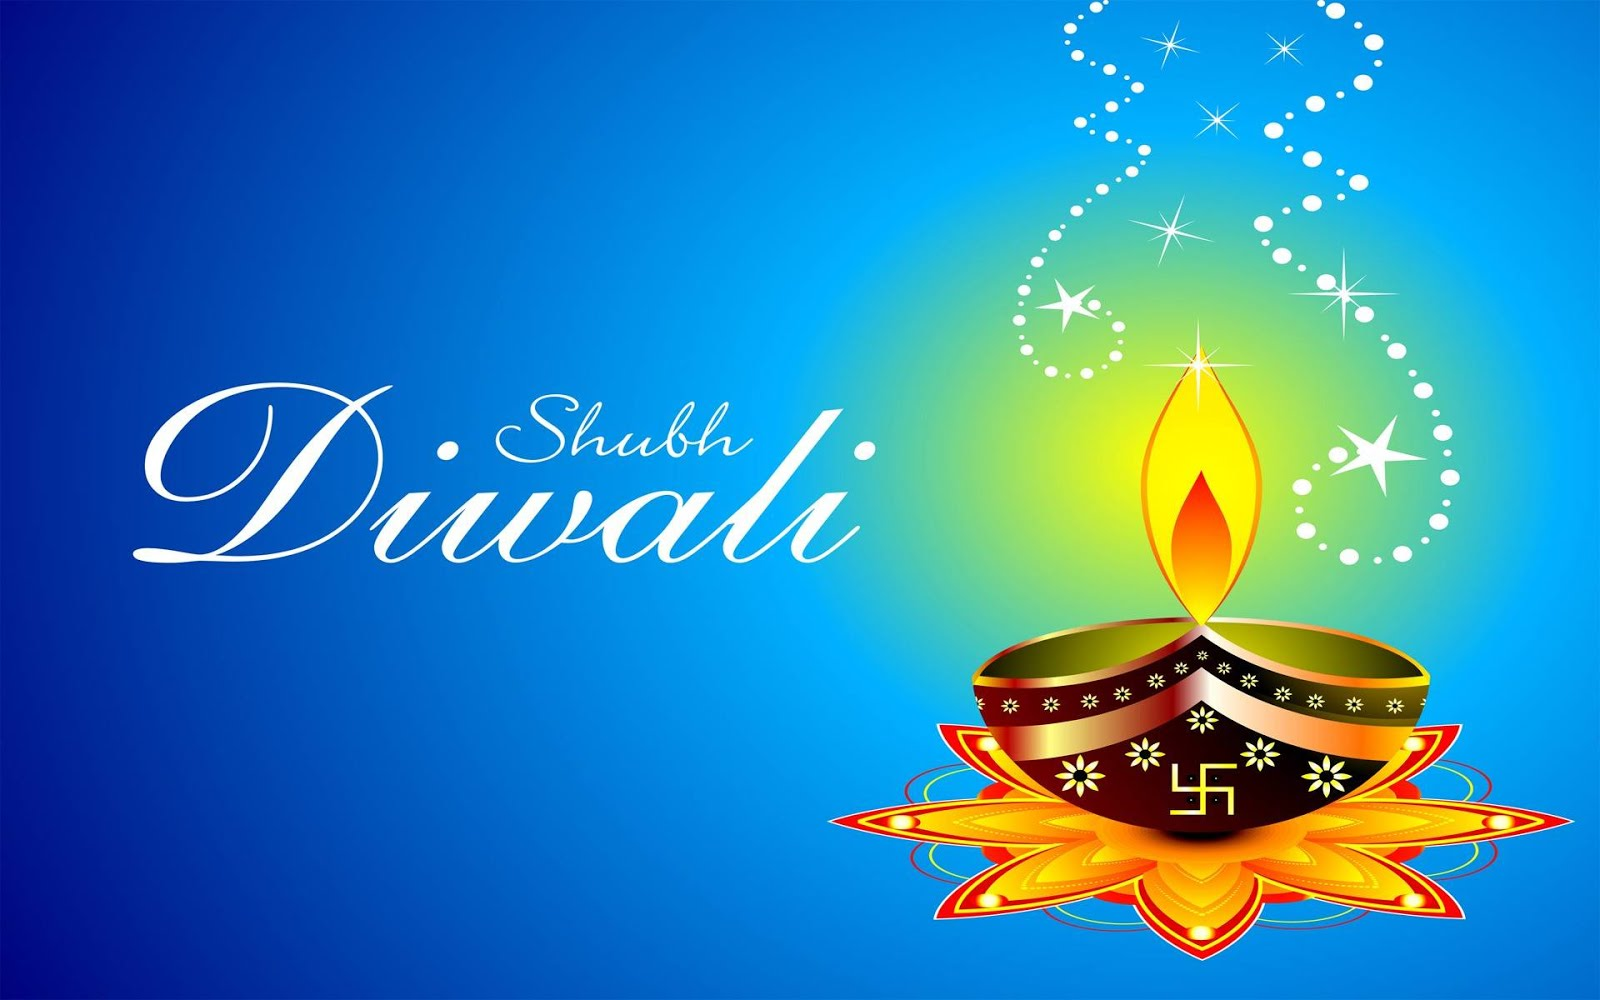 Happy Diwali Diwali Wallpapers Diwali Greetings Muggulu A2z